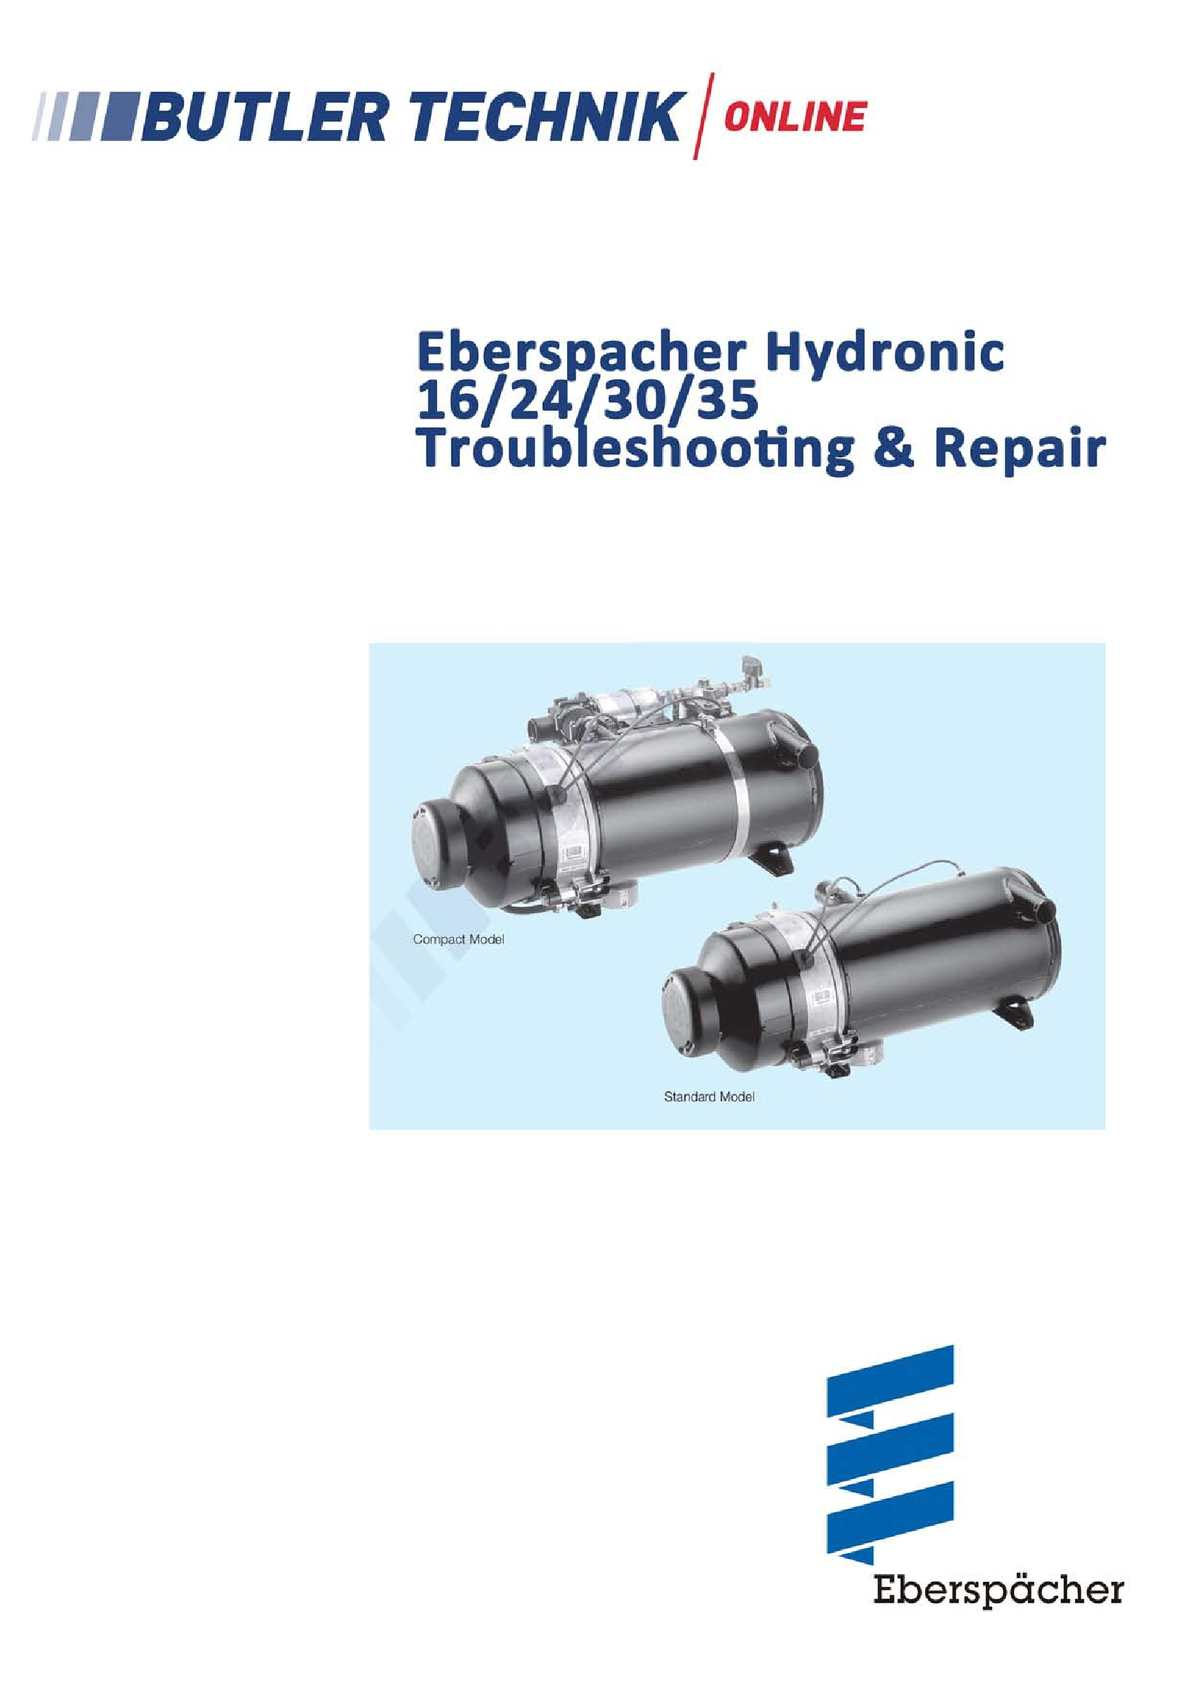 p1 calam�o eberspacher hydronic 30 workshop manual eberspacher hydronic wiring diagram at creativeand.co